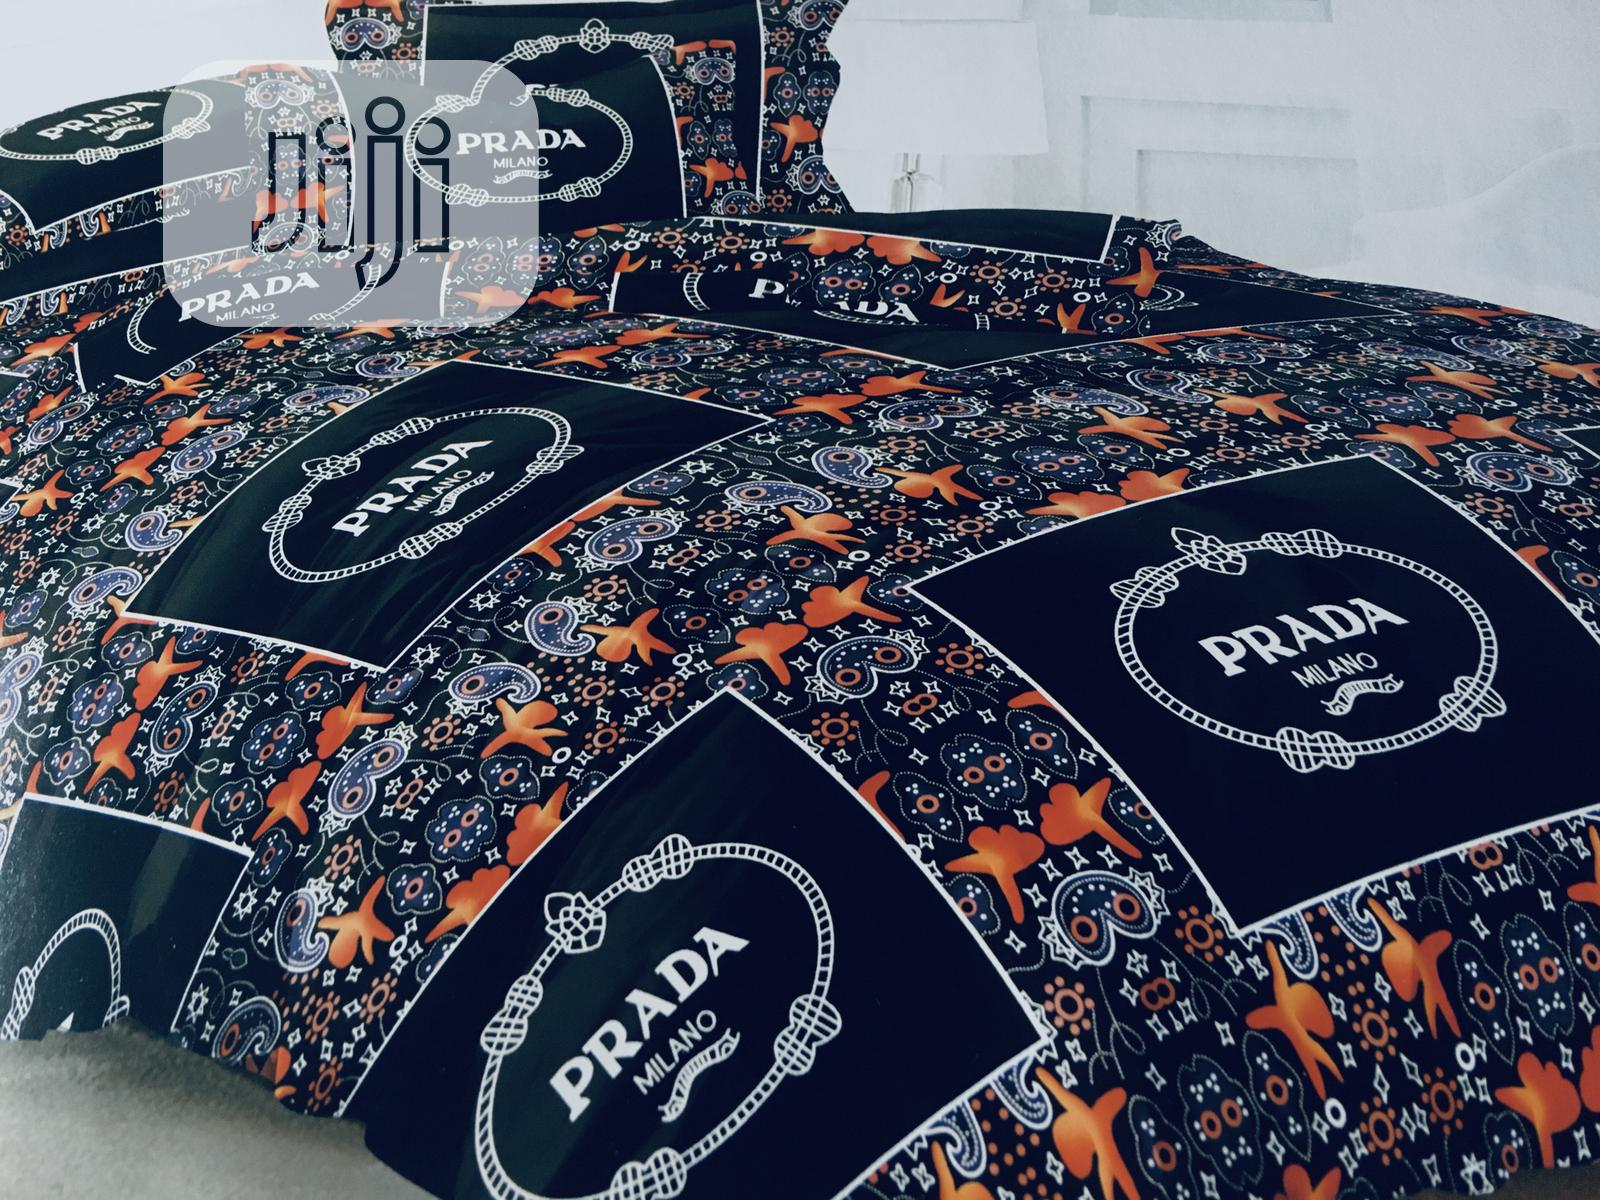 Archive: PRADA Bedsheets/ Duvet For Wholesale Prices